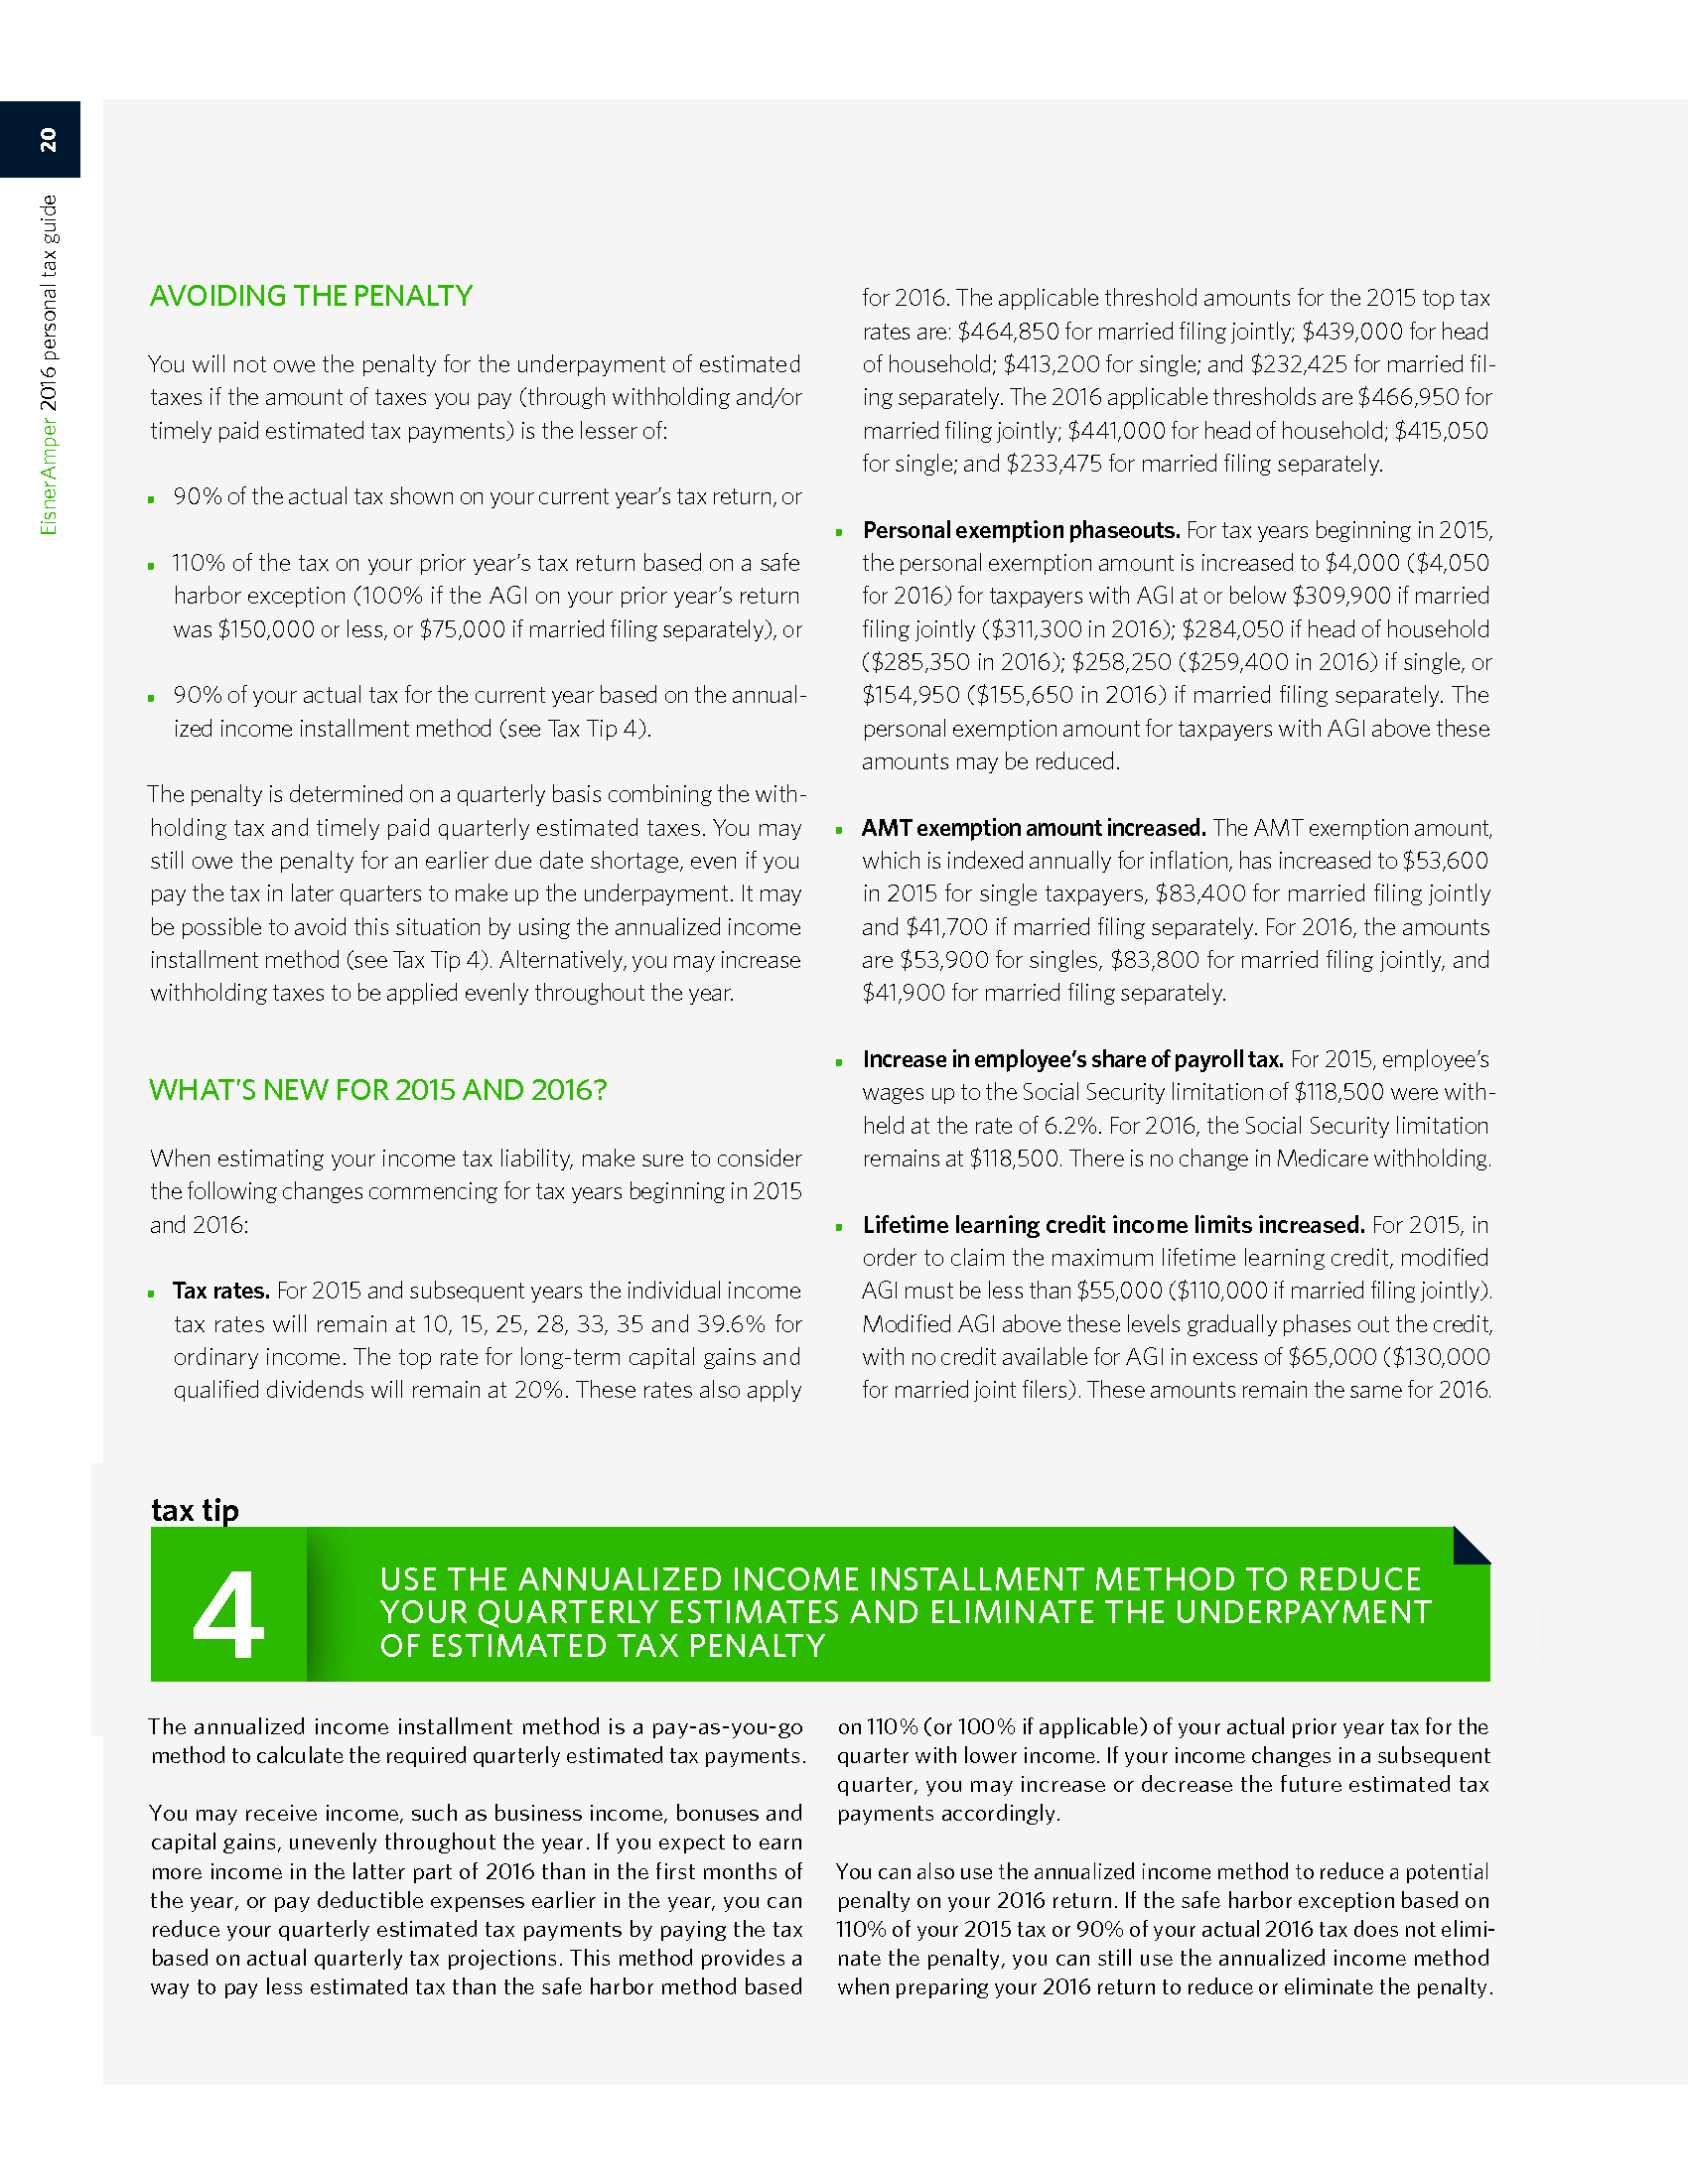 Advisorselect - 2016 Personal Tax Guide and Tax Tips for 2015